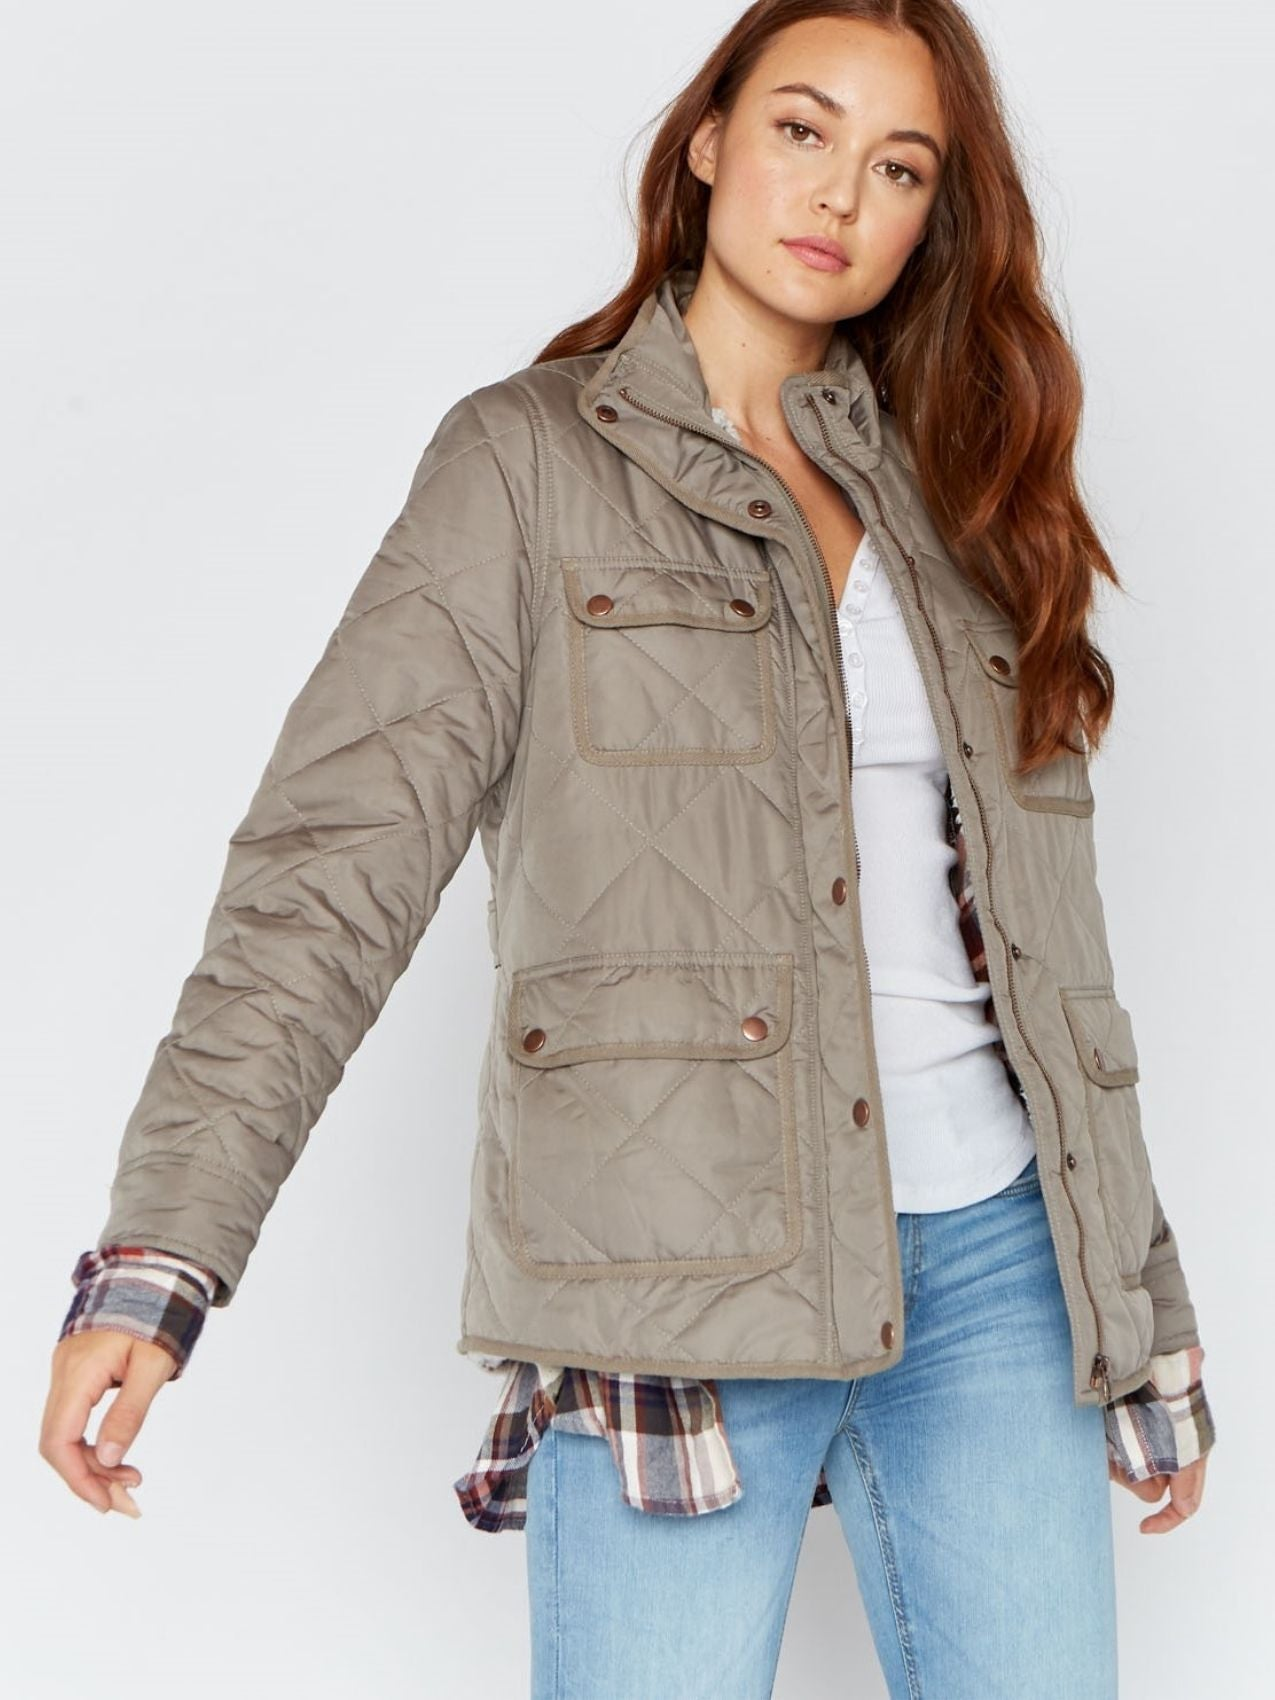 Lucid Dream Jacket Jacket Thread & Supply BLUSH S